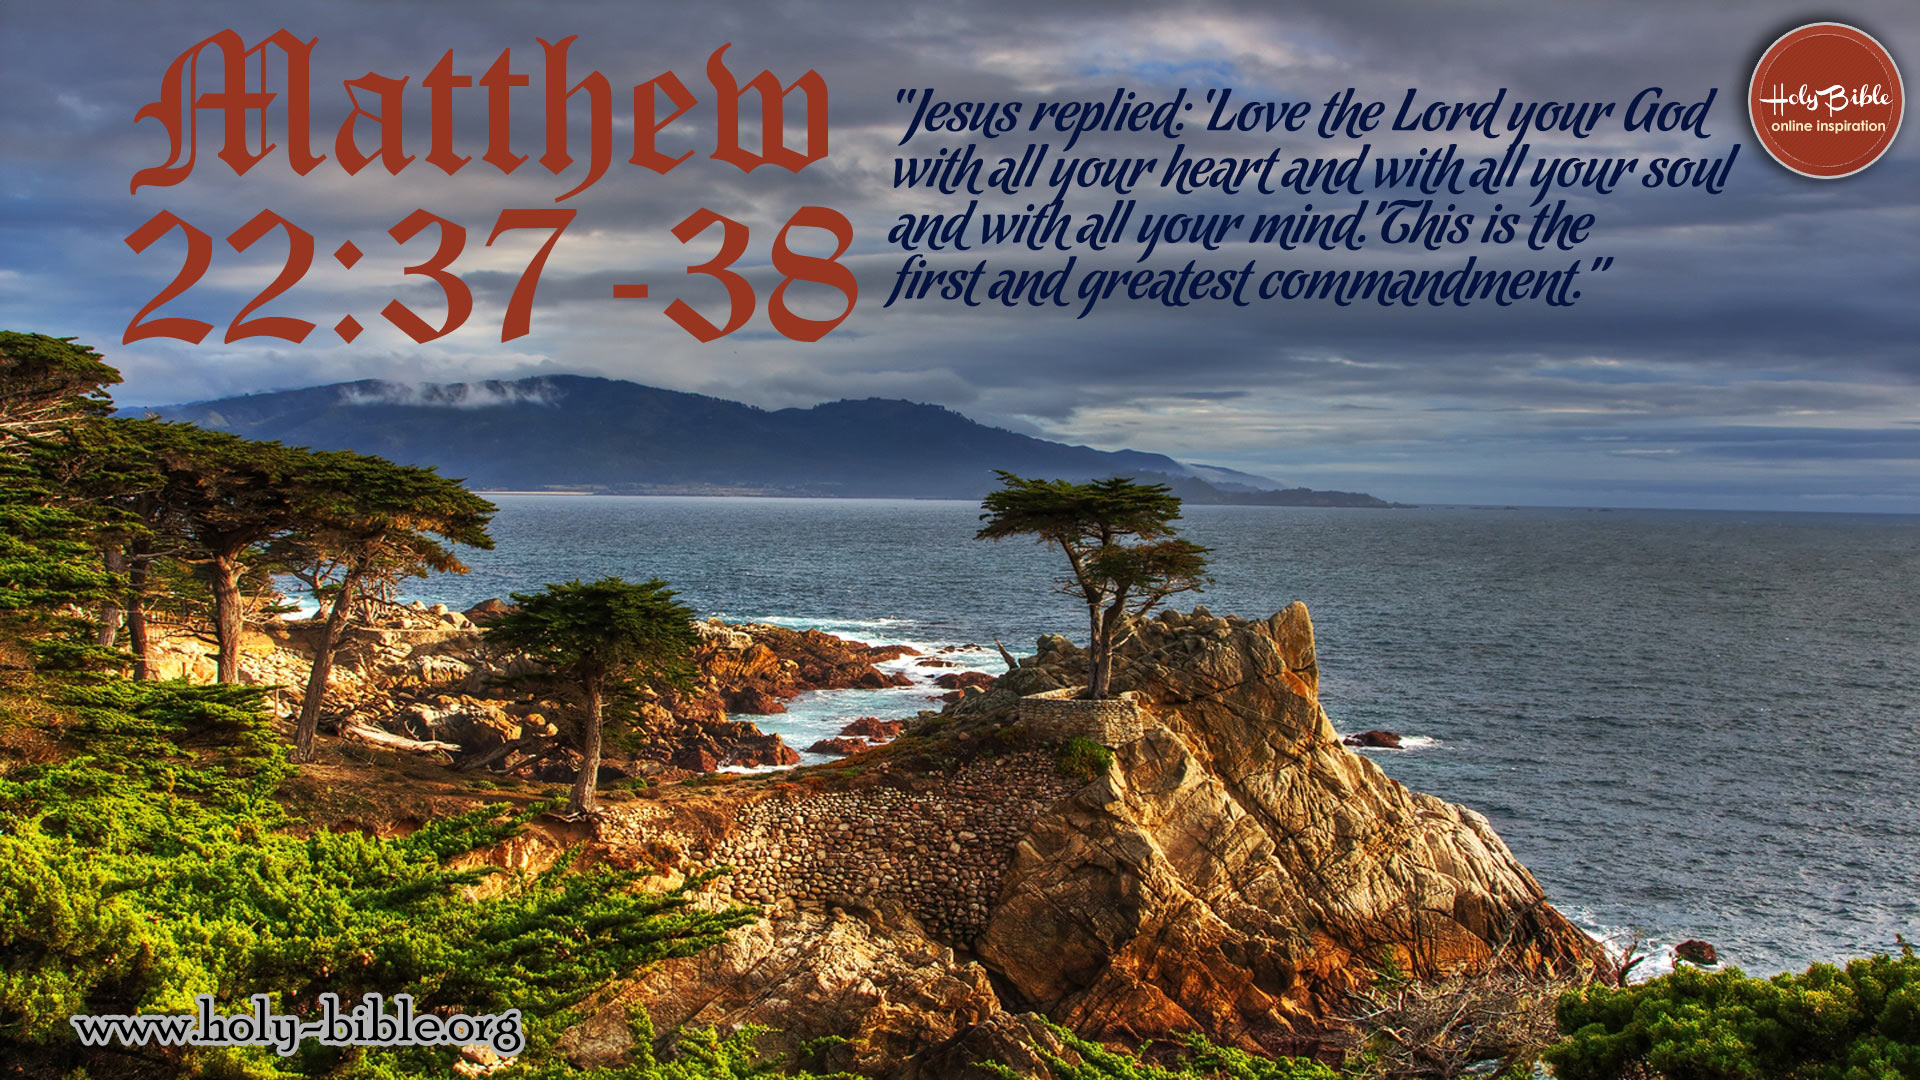 Bible Verse of the day - Matthew 22:37-38